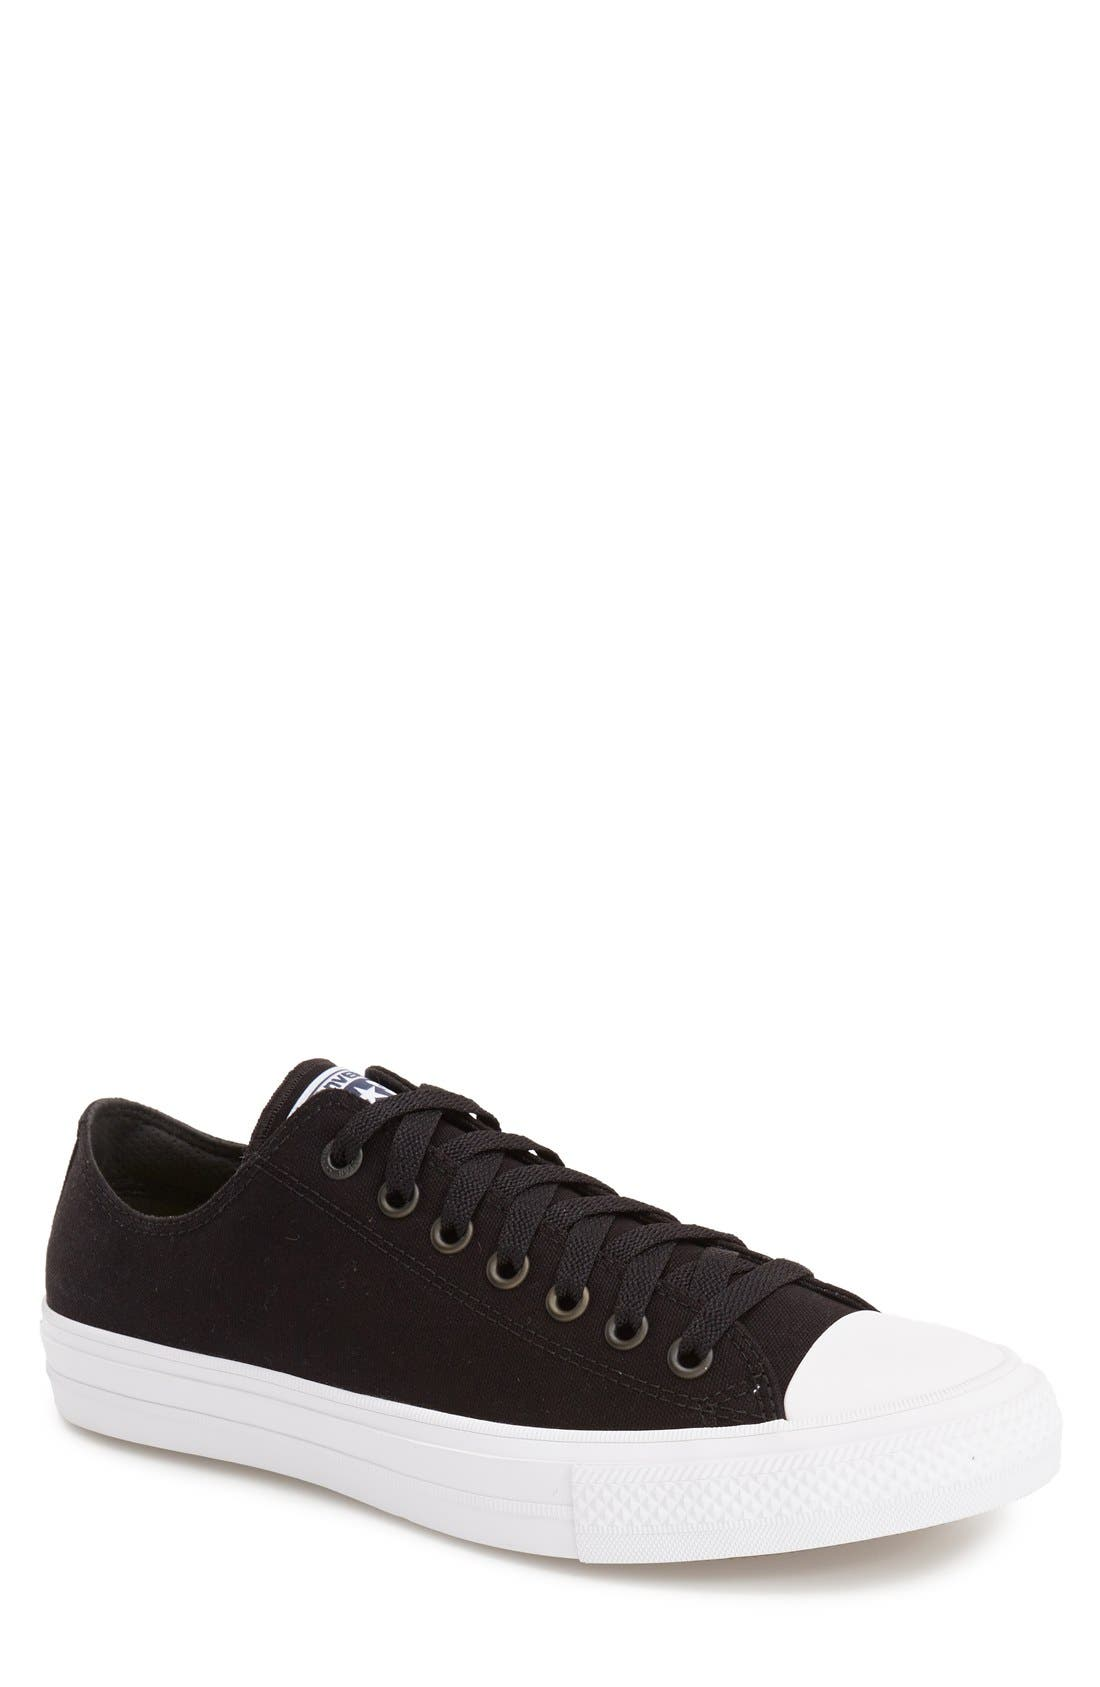 CONVERSE, Chuck Taylor<sup>®</sup> All Star<sup>®</sup> II 'Ox' Canvas Sneaker, Main thumbnail 1, color, 001